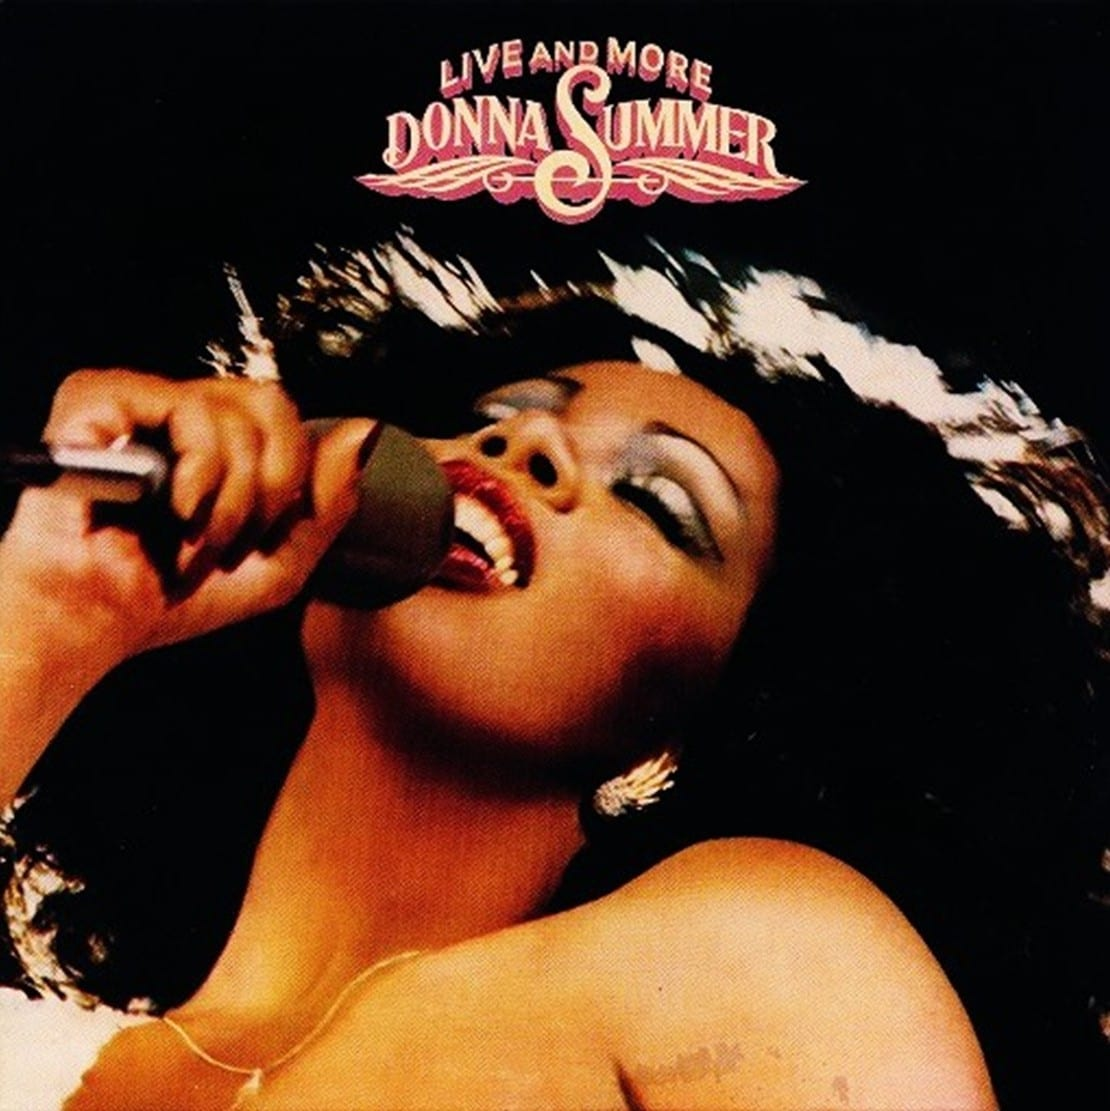 Donna Summer - Live And More (EXPANDED VERSION) (1978) 2 CD SET 13